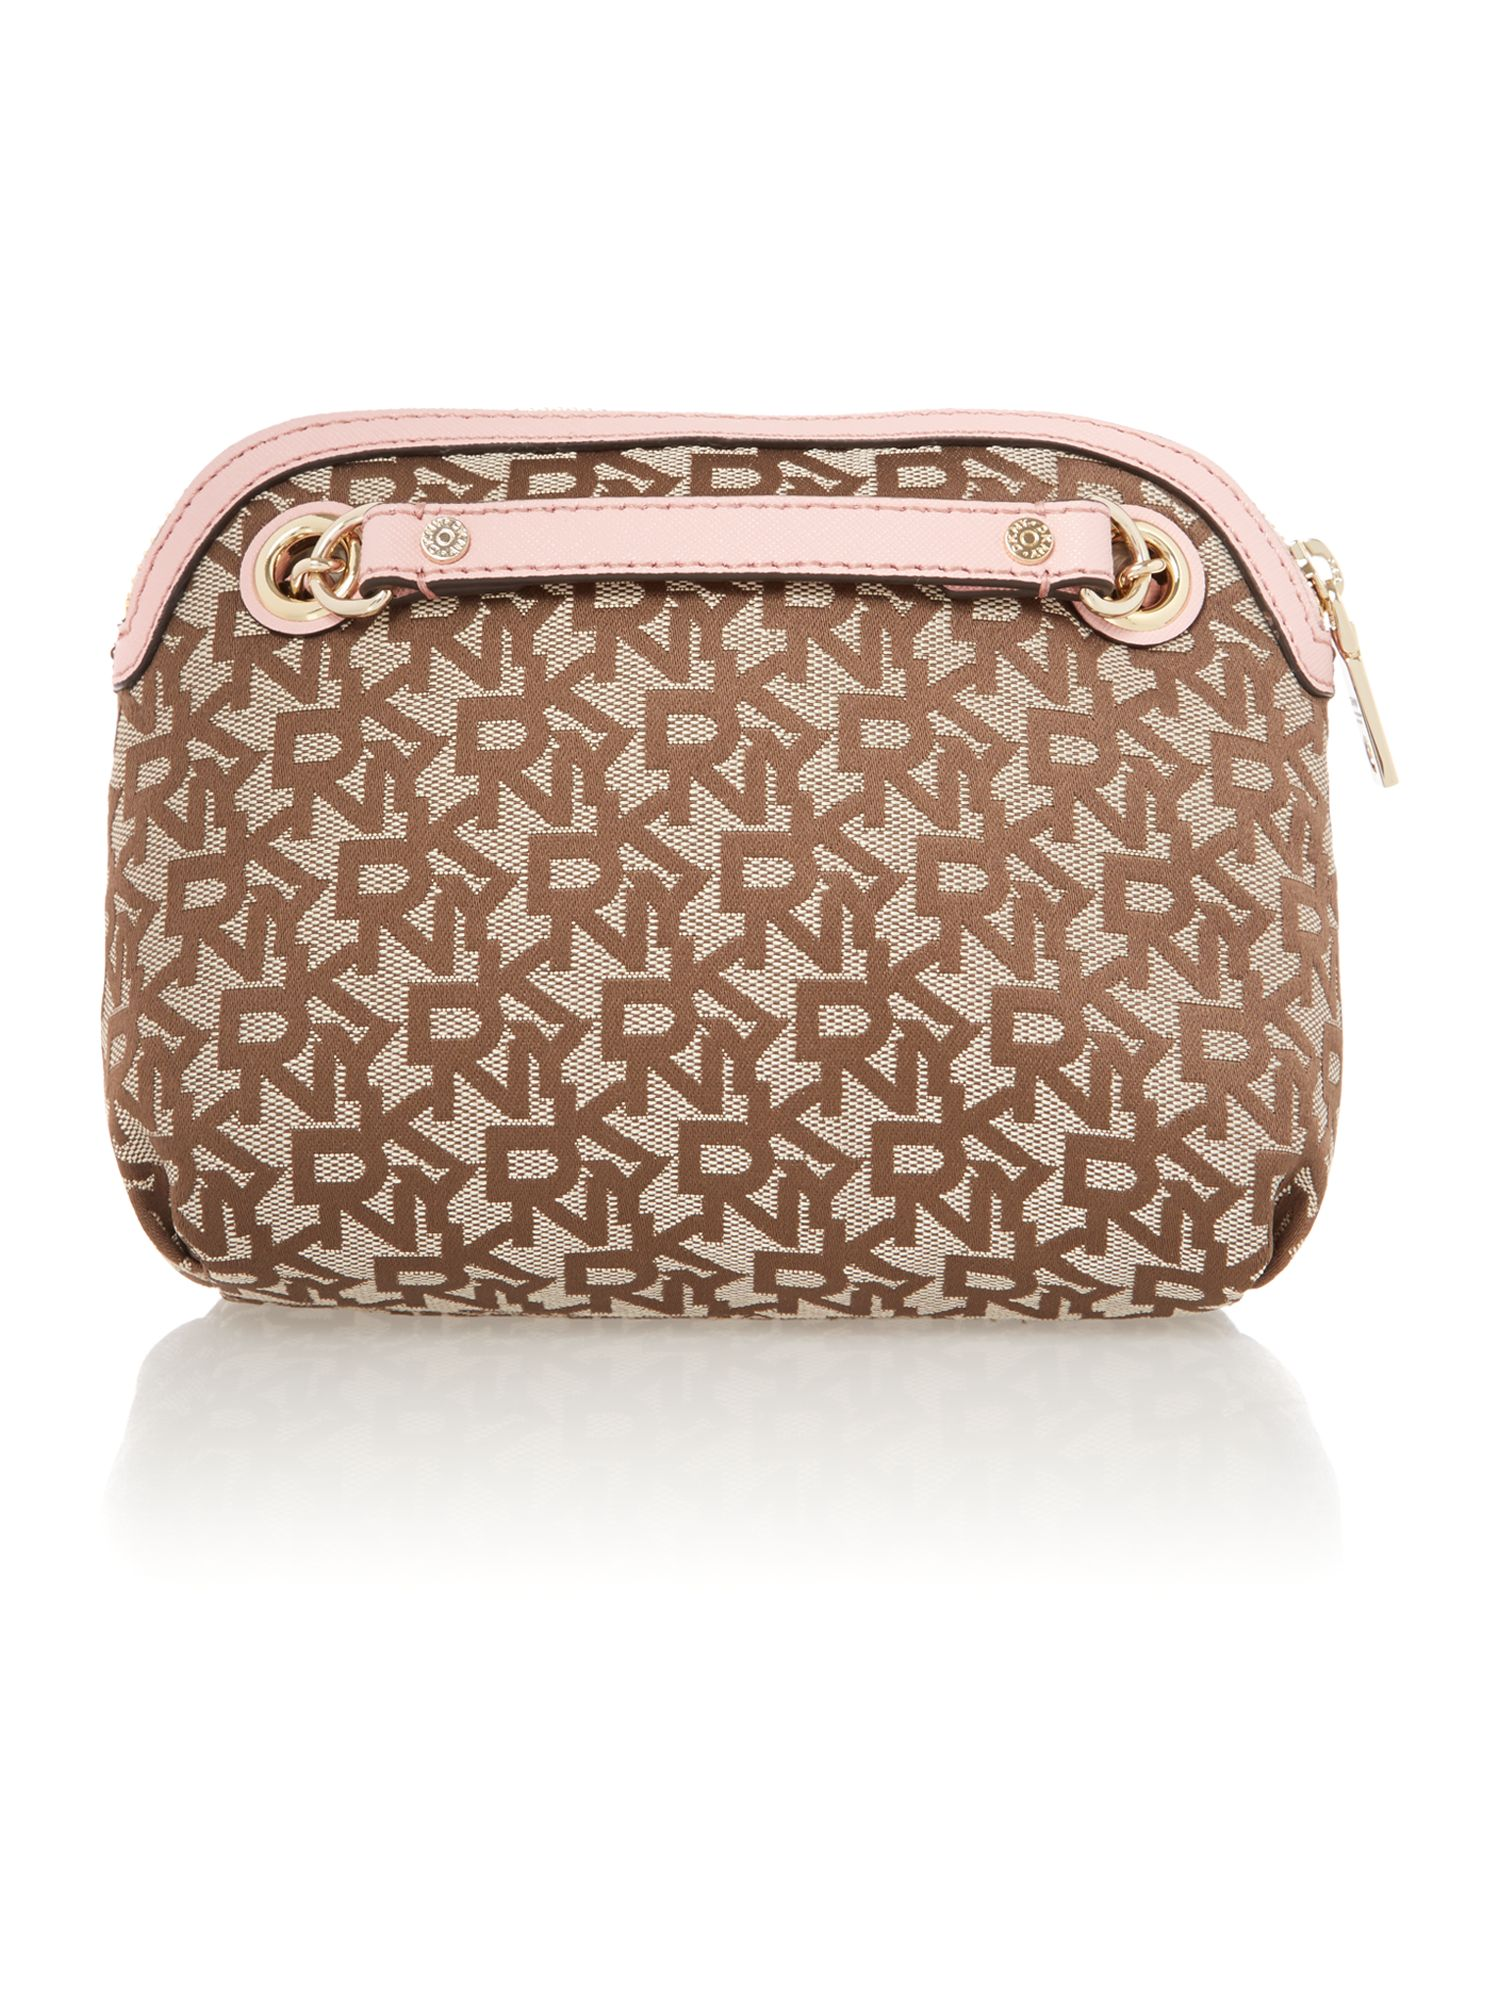 Saffiano pink small crossbody bag